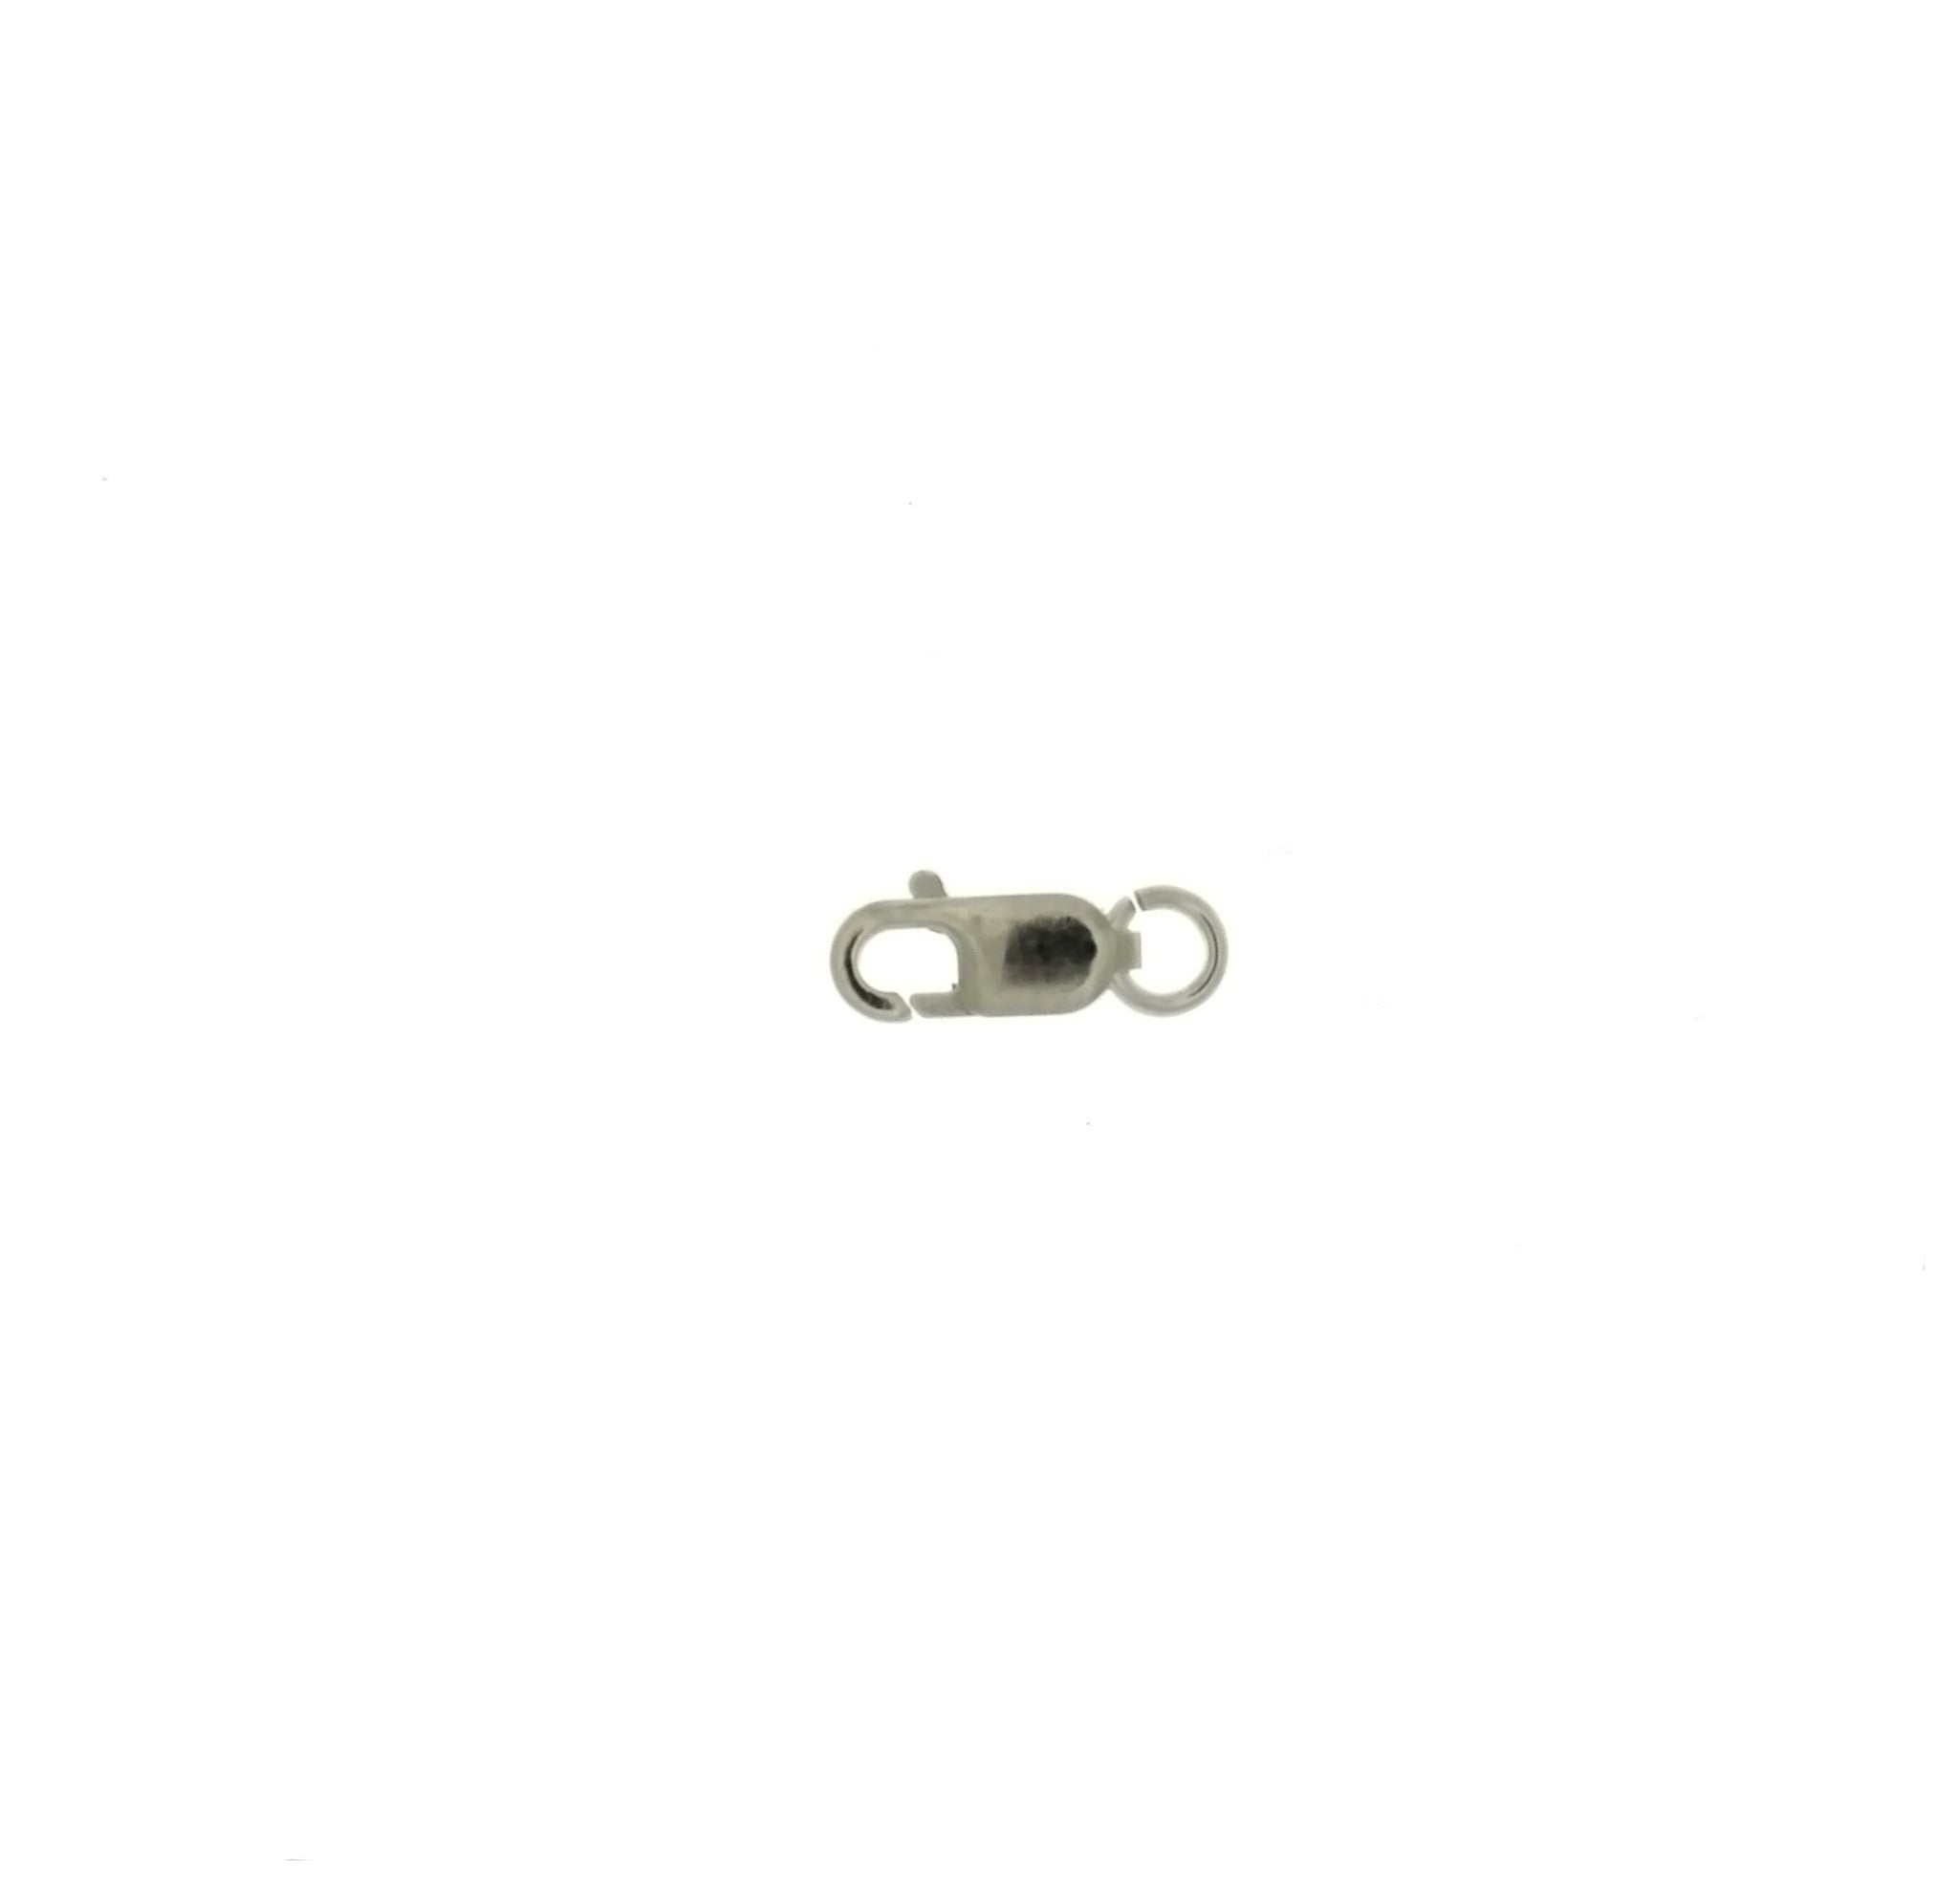 CLASP LOBSTER CLAW 9 MM SS FINDING (1 PC)